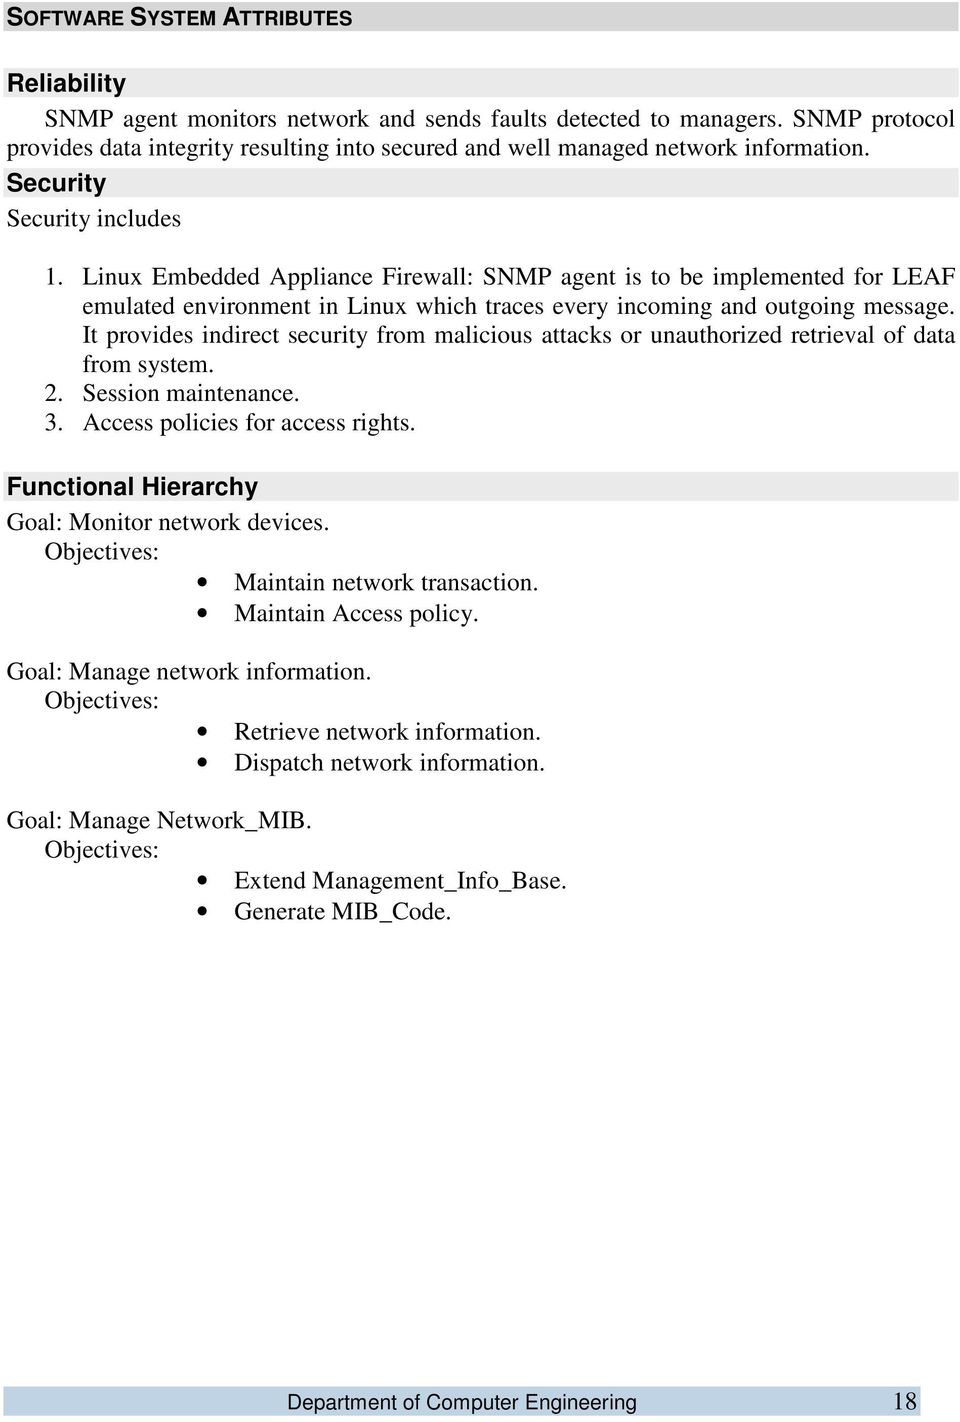 Linux Embedded Appliance Firewall: SNMP agent is to be implemented for LEAF emulated environment in Linux which traces every incoming and outgoing message.